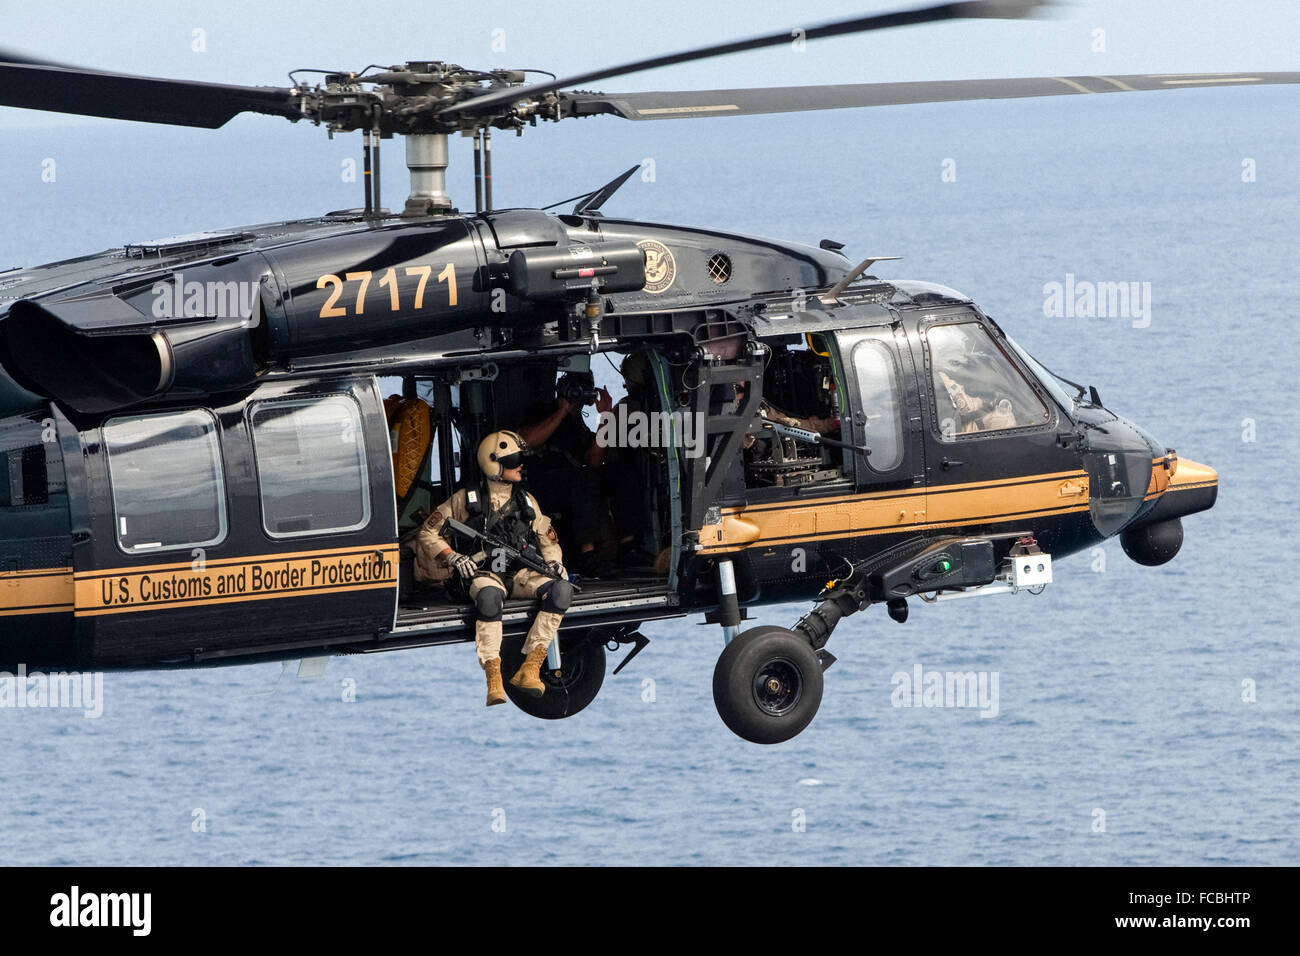 US Customs and Border Protection CBP Office of Air and Marine unit operating a Sikorsky UH-60 Blackhawk helicopter - Stock Image